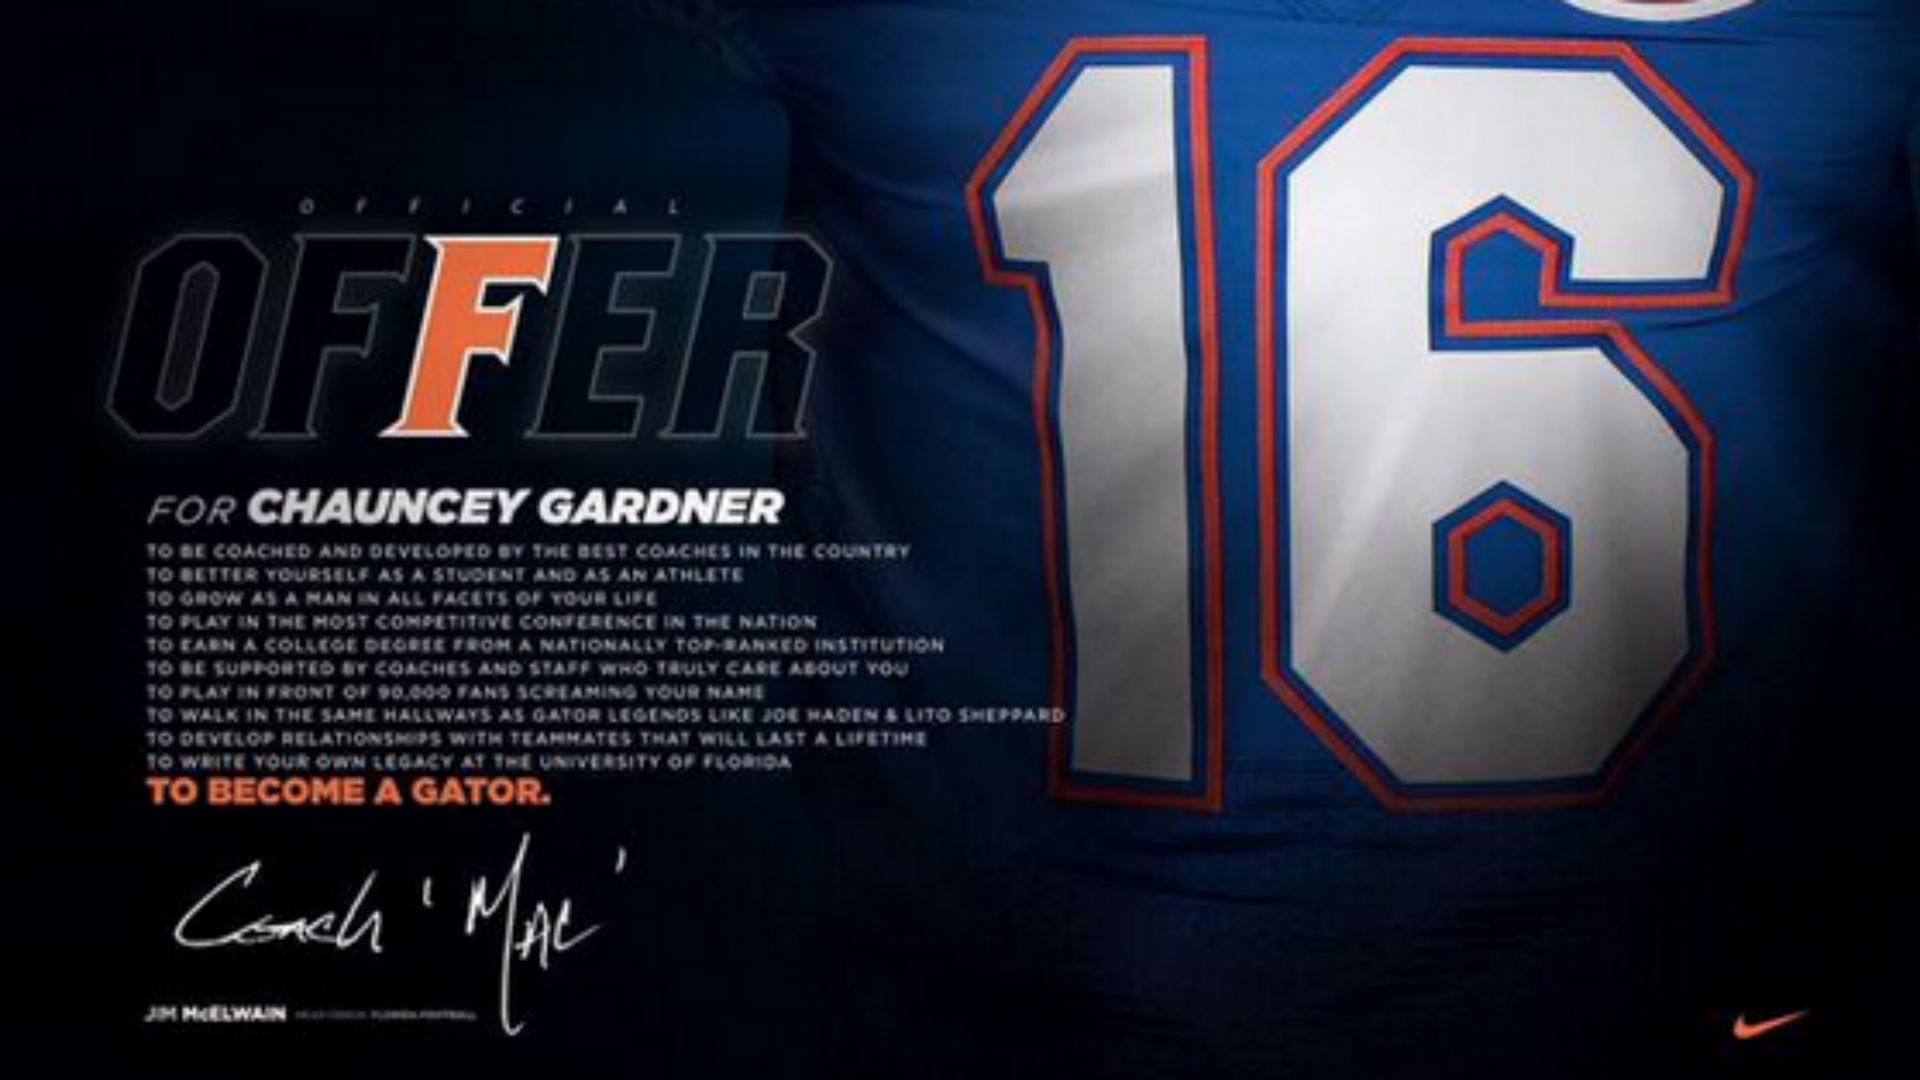 Florida's new official offer letters are sweet